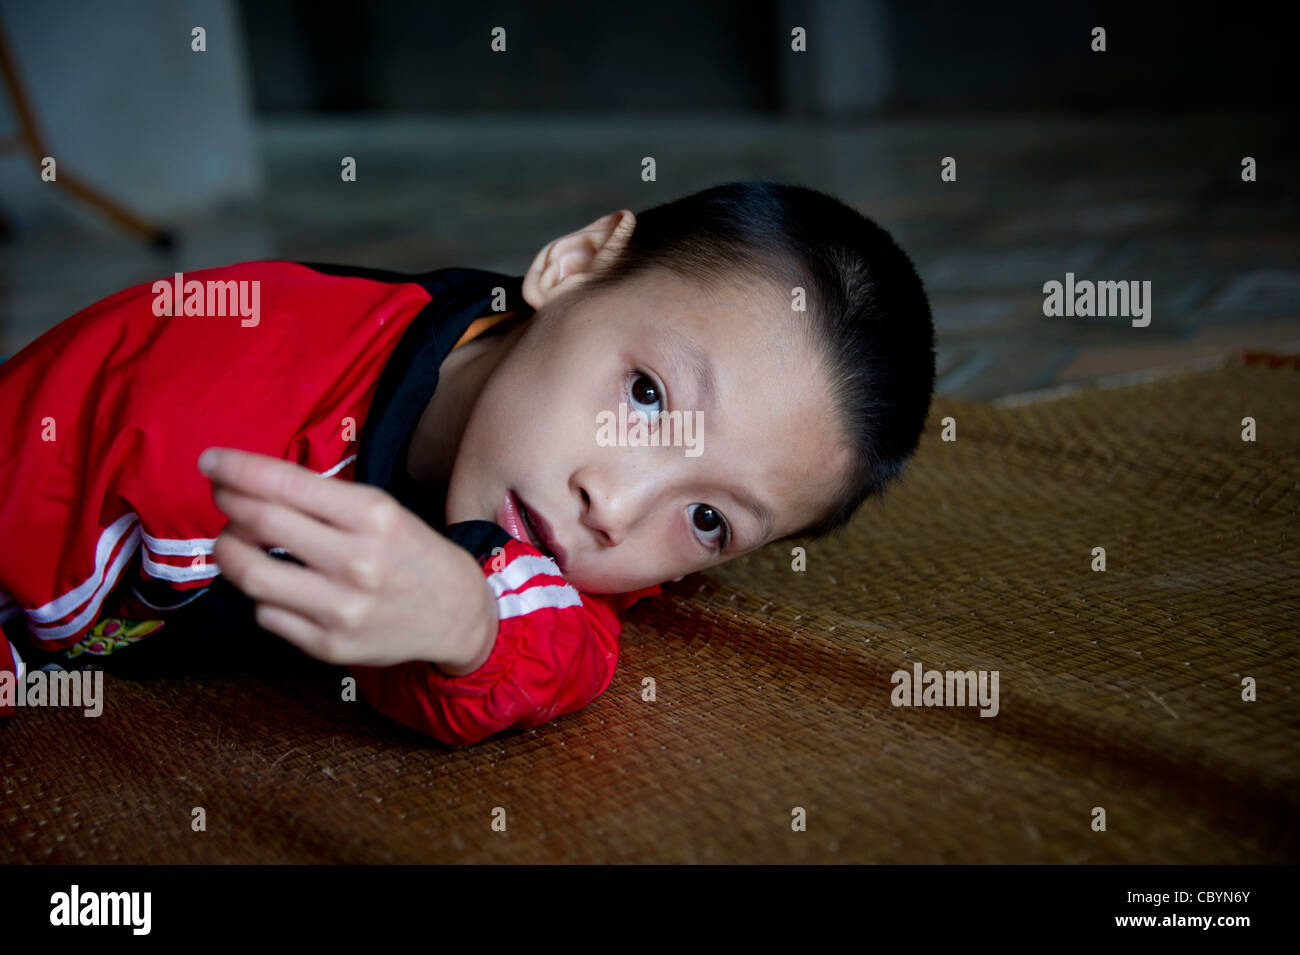 Young Vietnamese boy diagnosed as Cerebral Palsy (CP) patient, the result of a loss of oxygen immediately before - Stock Image